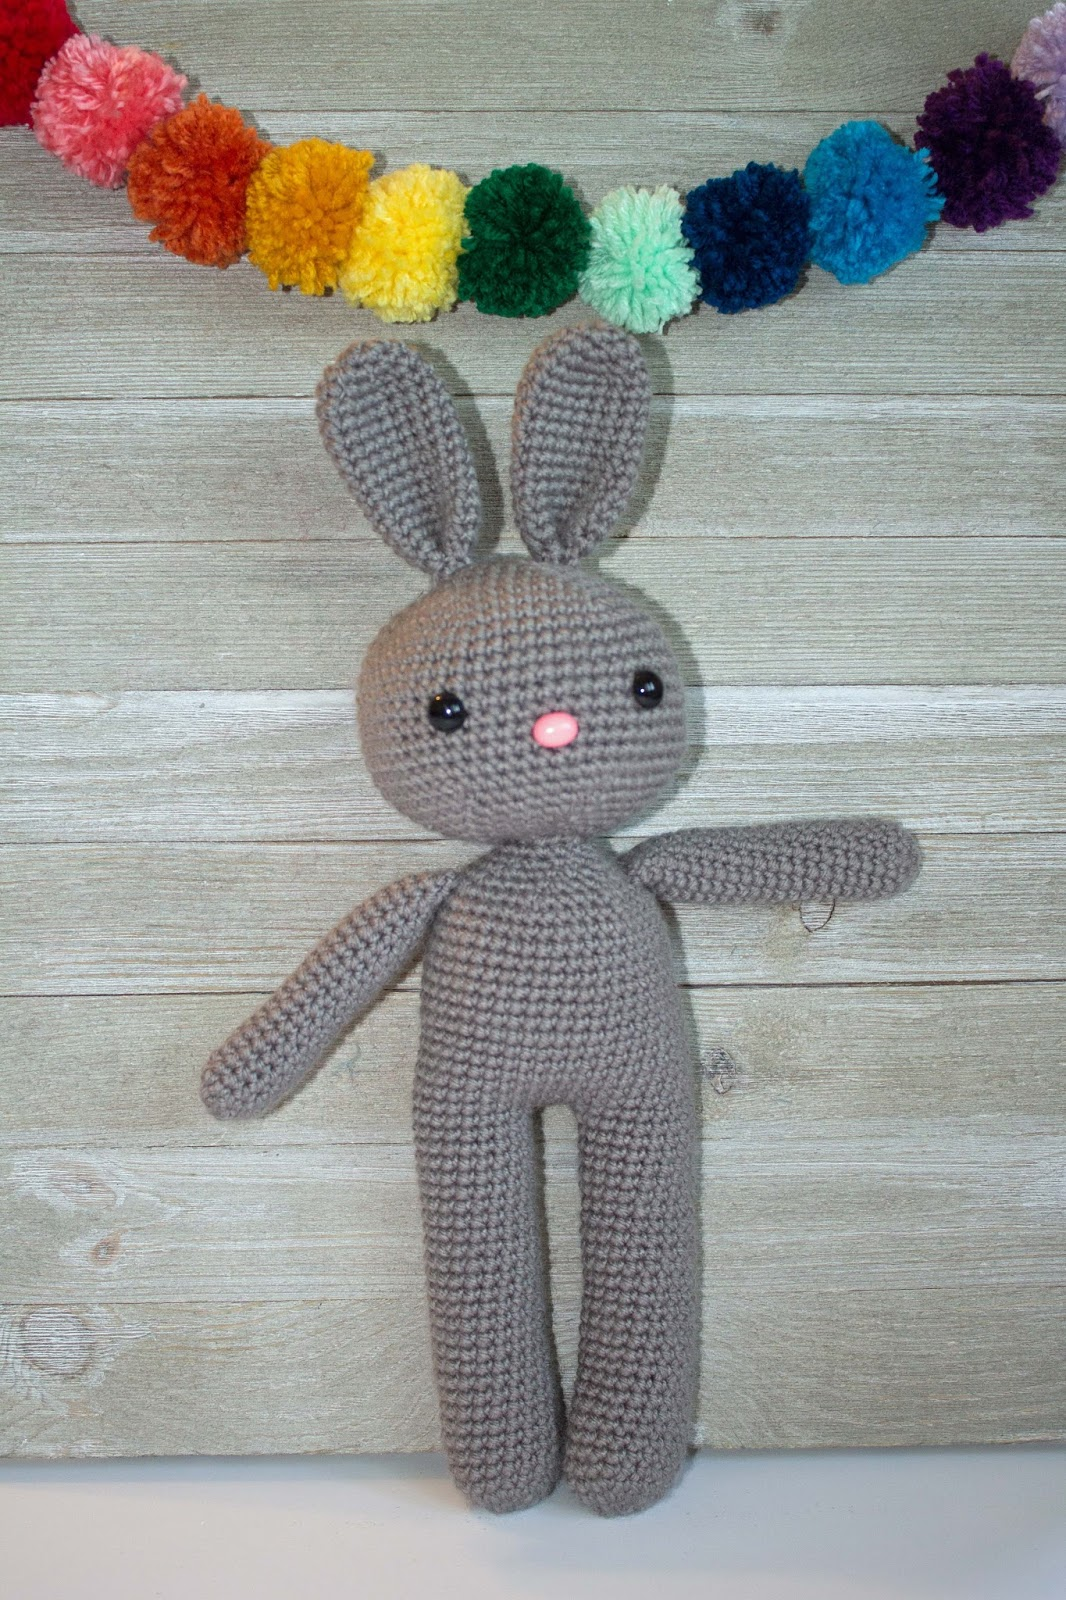 Velvet Bunny Amigurumi Free Crochet Pattern - Crochet For You | 1600x1066